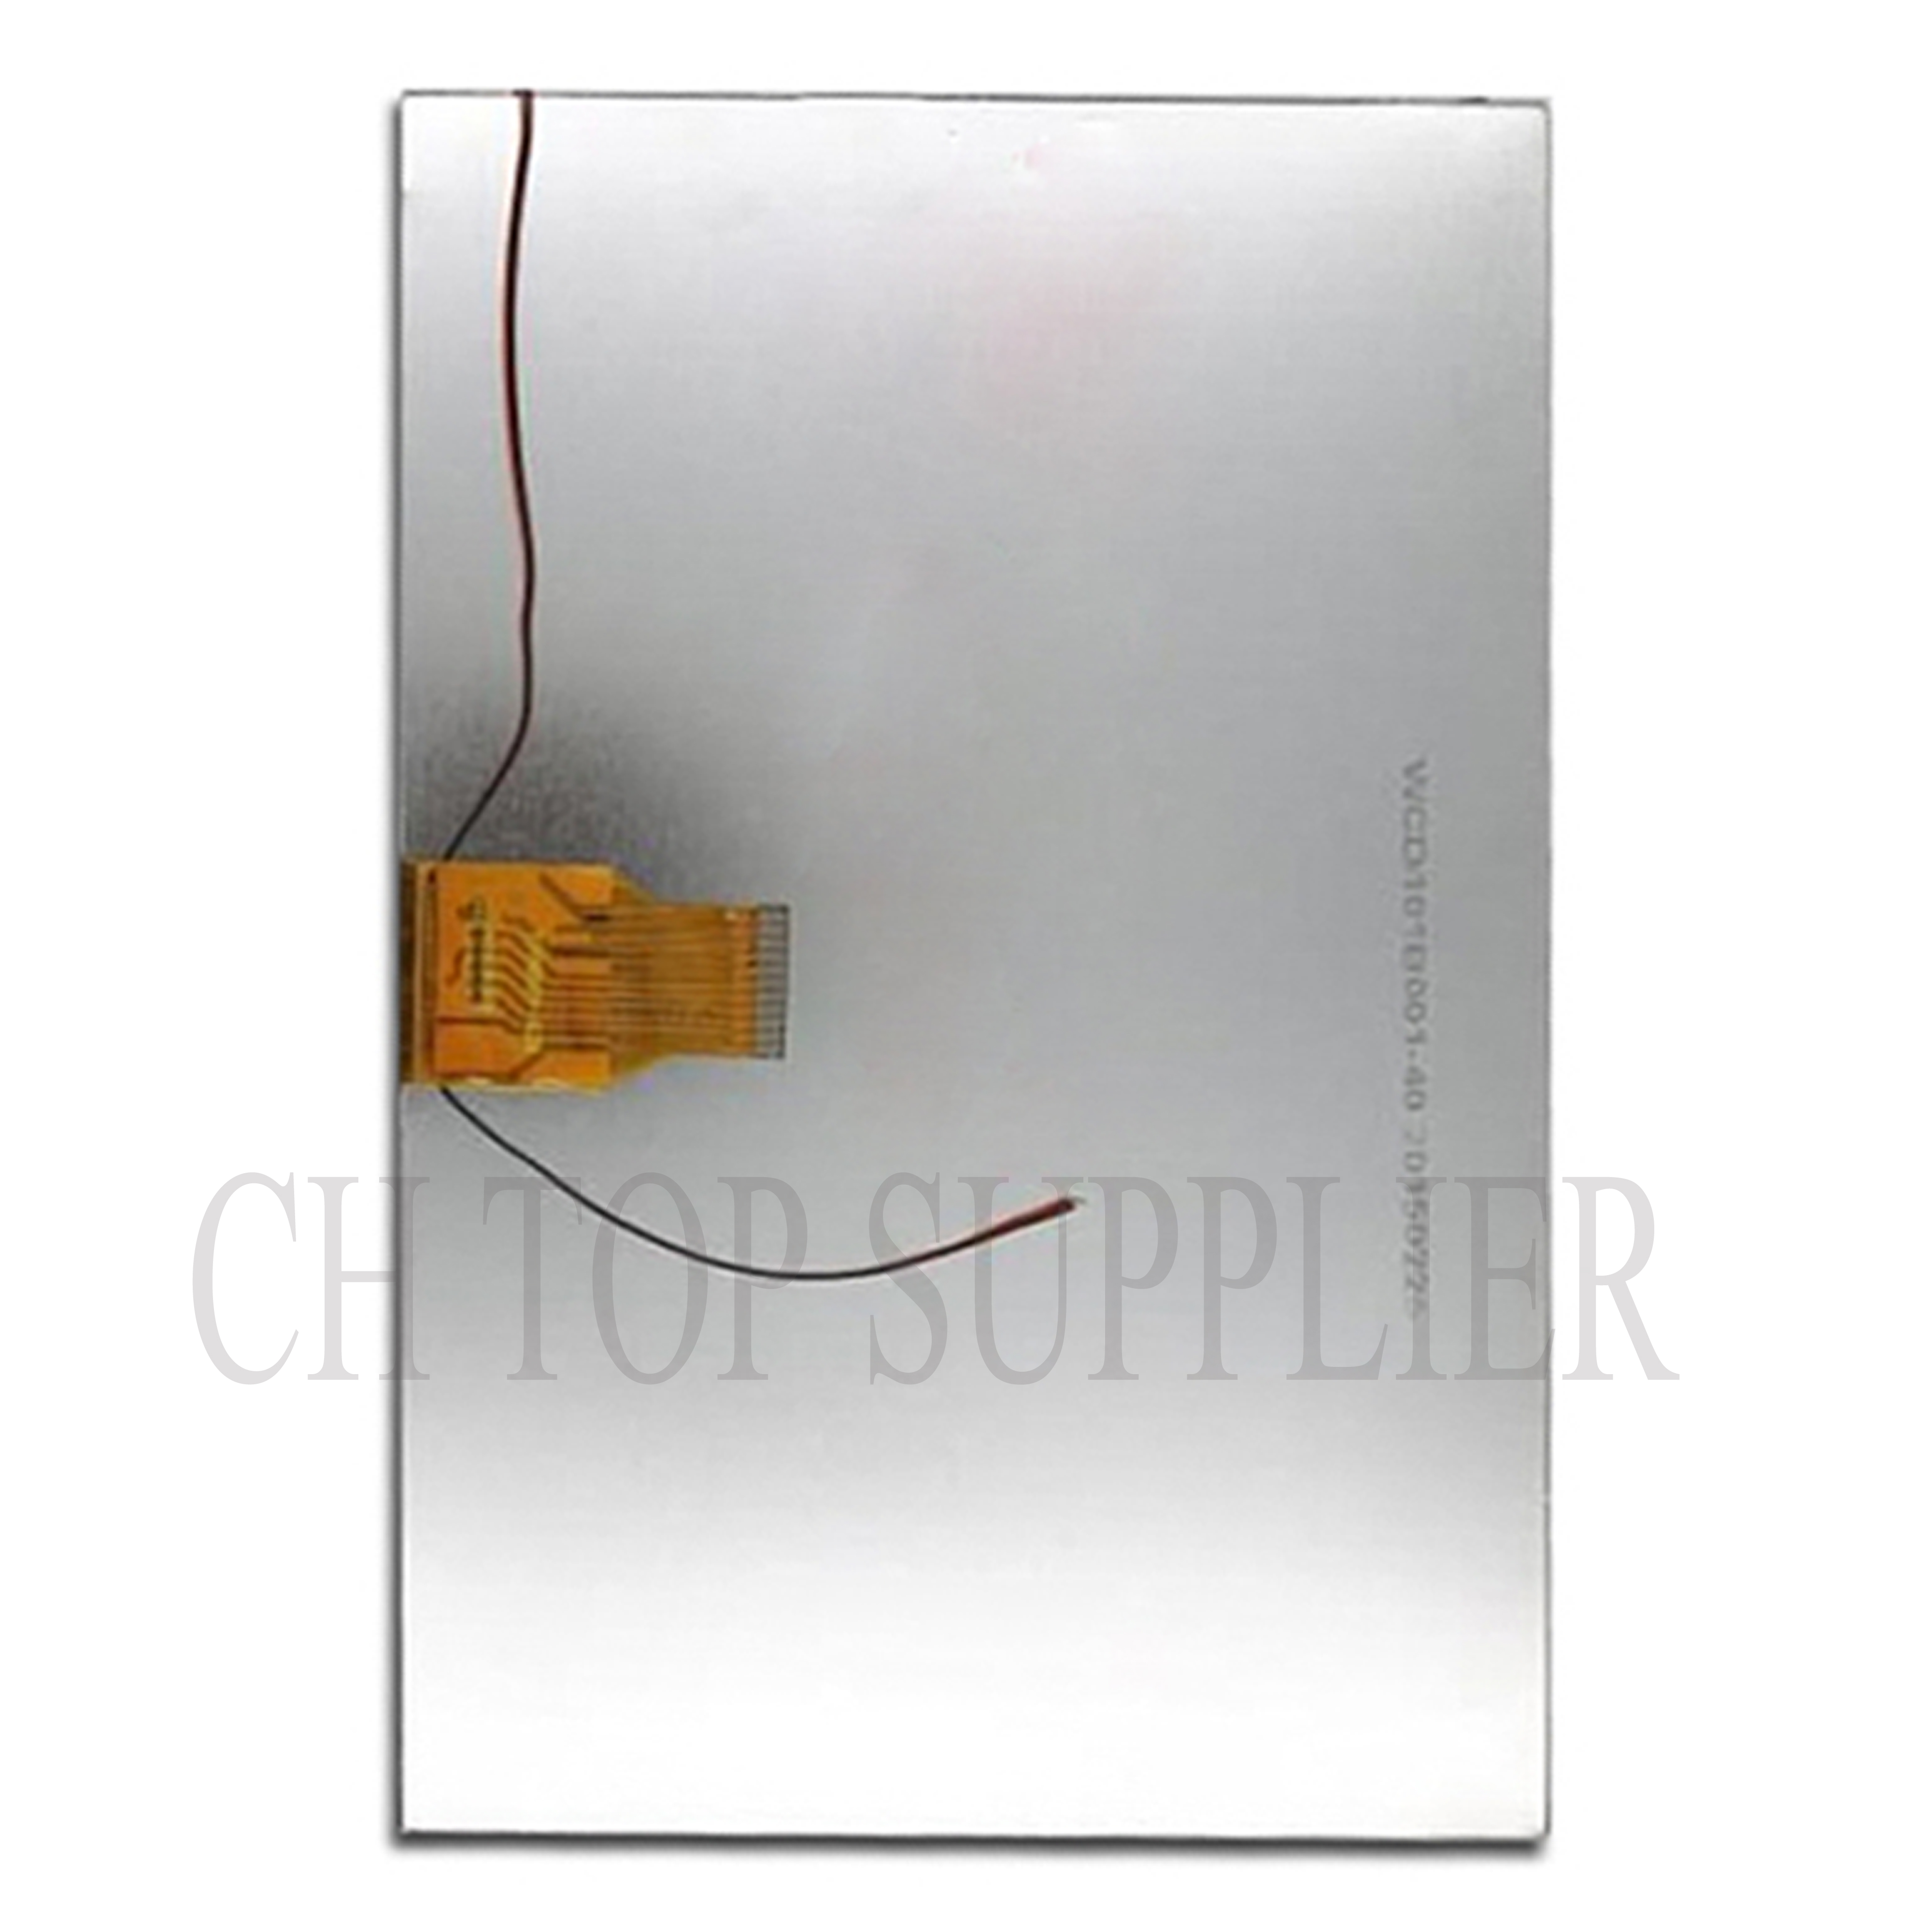 Original and New 10.1inch 40pin LCD screen T10140B-A3 WD T10140B 1024x600 for tablet pc free shipping free shipping original 9 inch lcd screen cable numbers kr090lb3s 1030300647 40pin